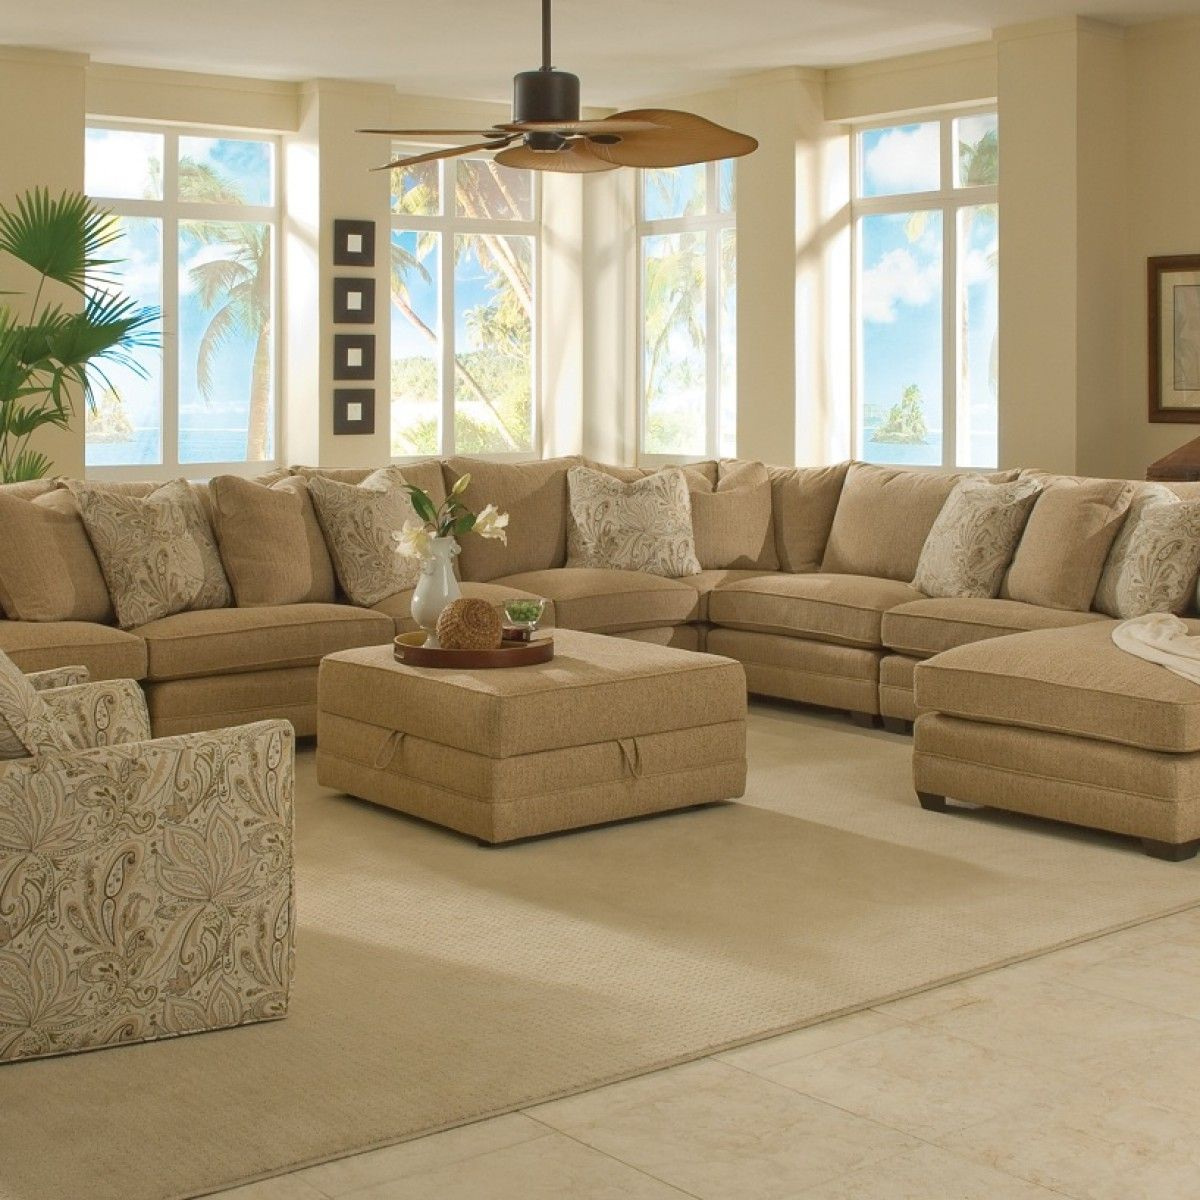 Magnificent large sectional sofas family room for Full room furniture design